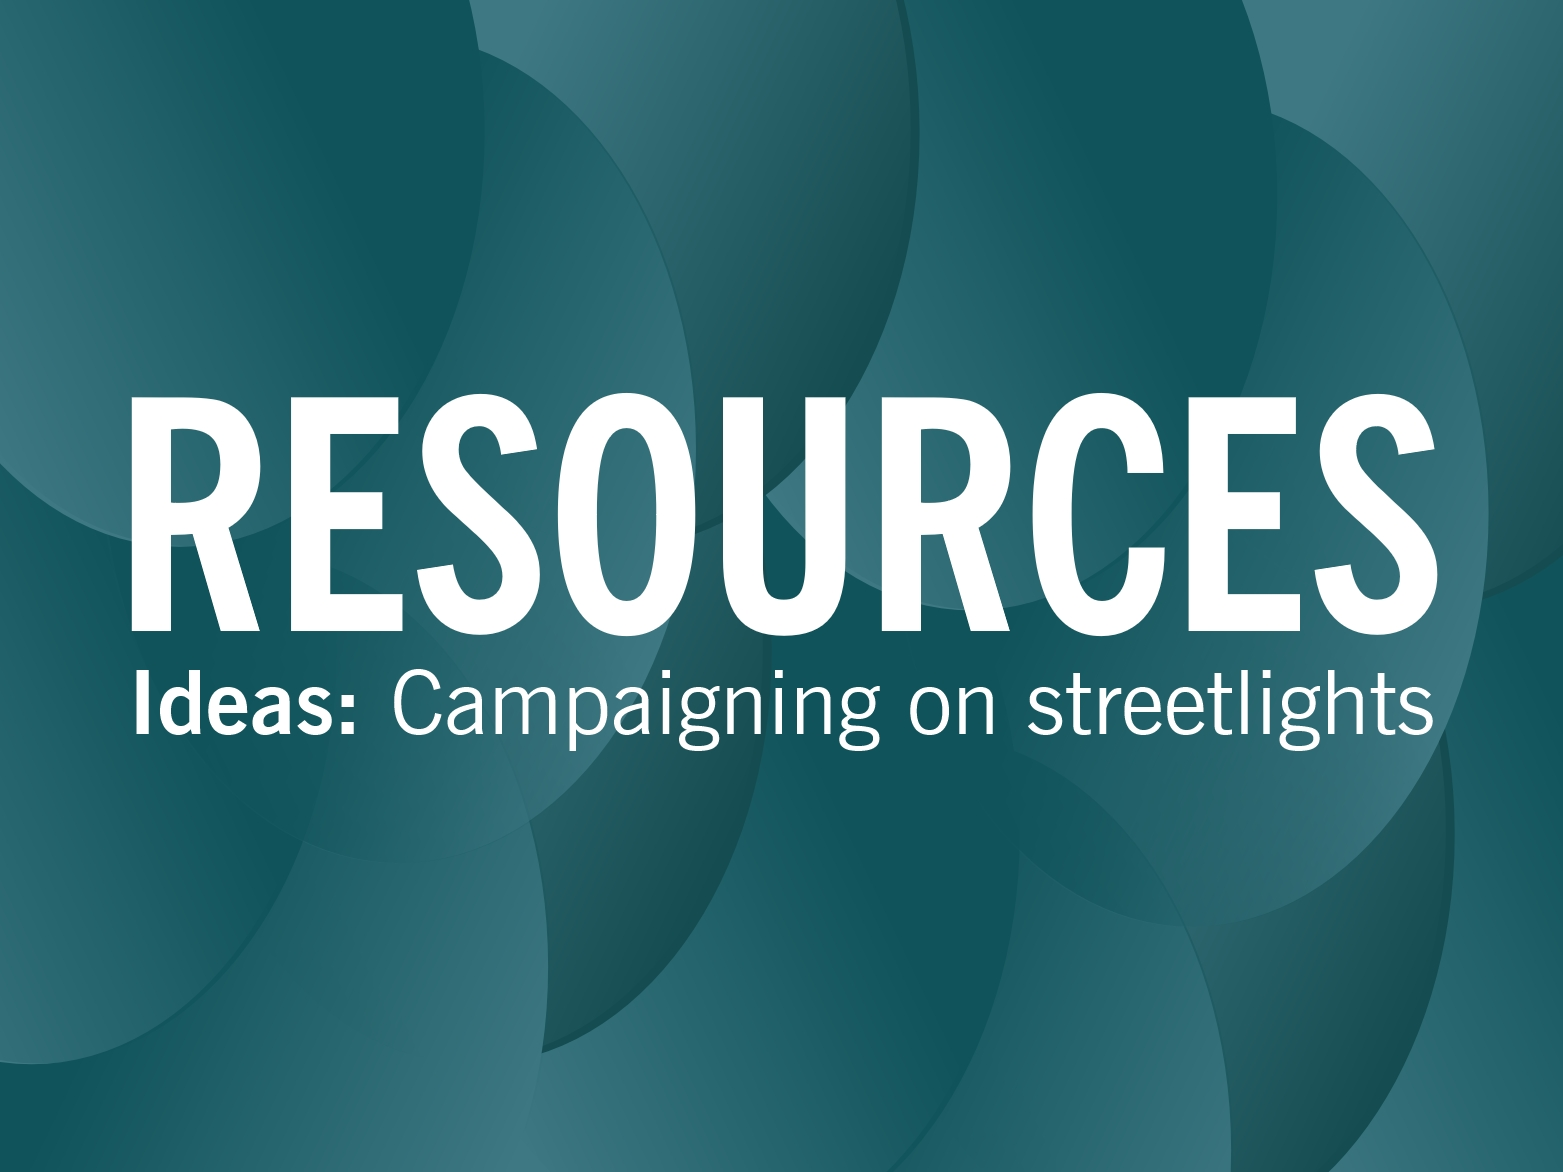 RESOURCES: Sorting out street lights and reporting back